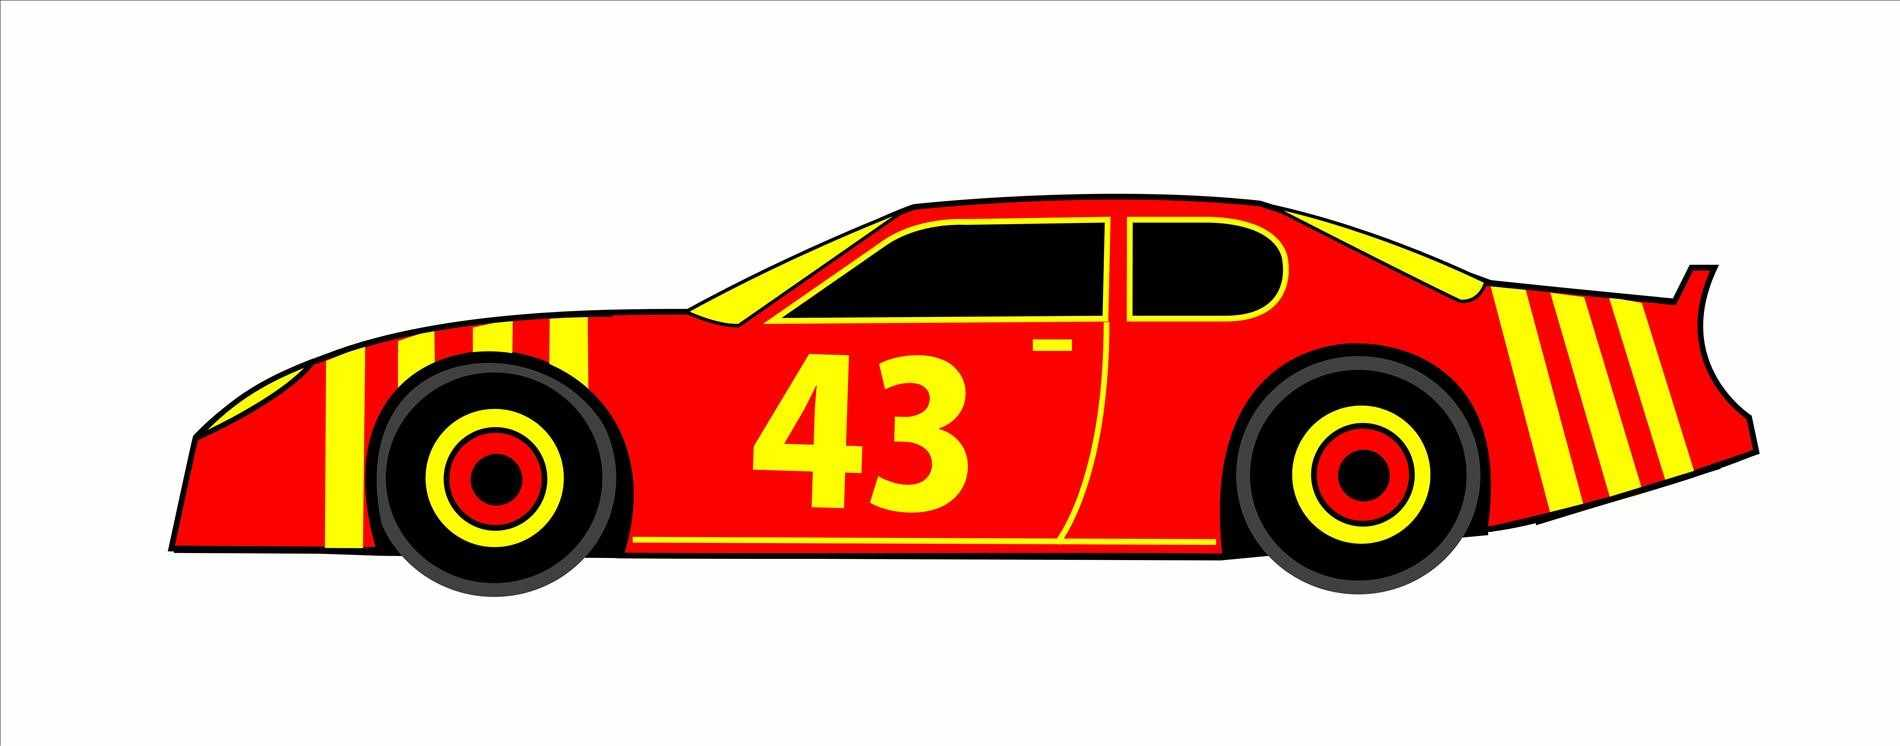 1900x746 Race Race Cars Clip Art Car Racecar Clip Art Clipartandscrap